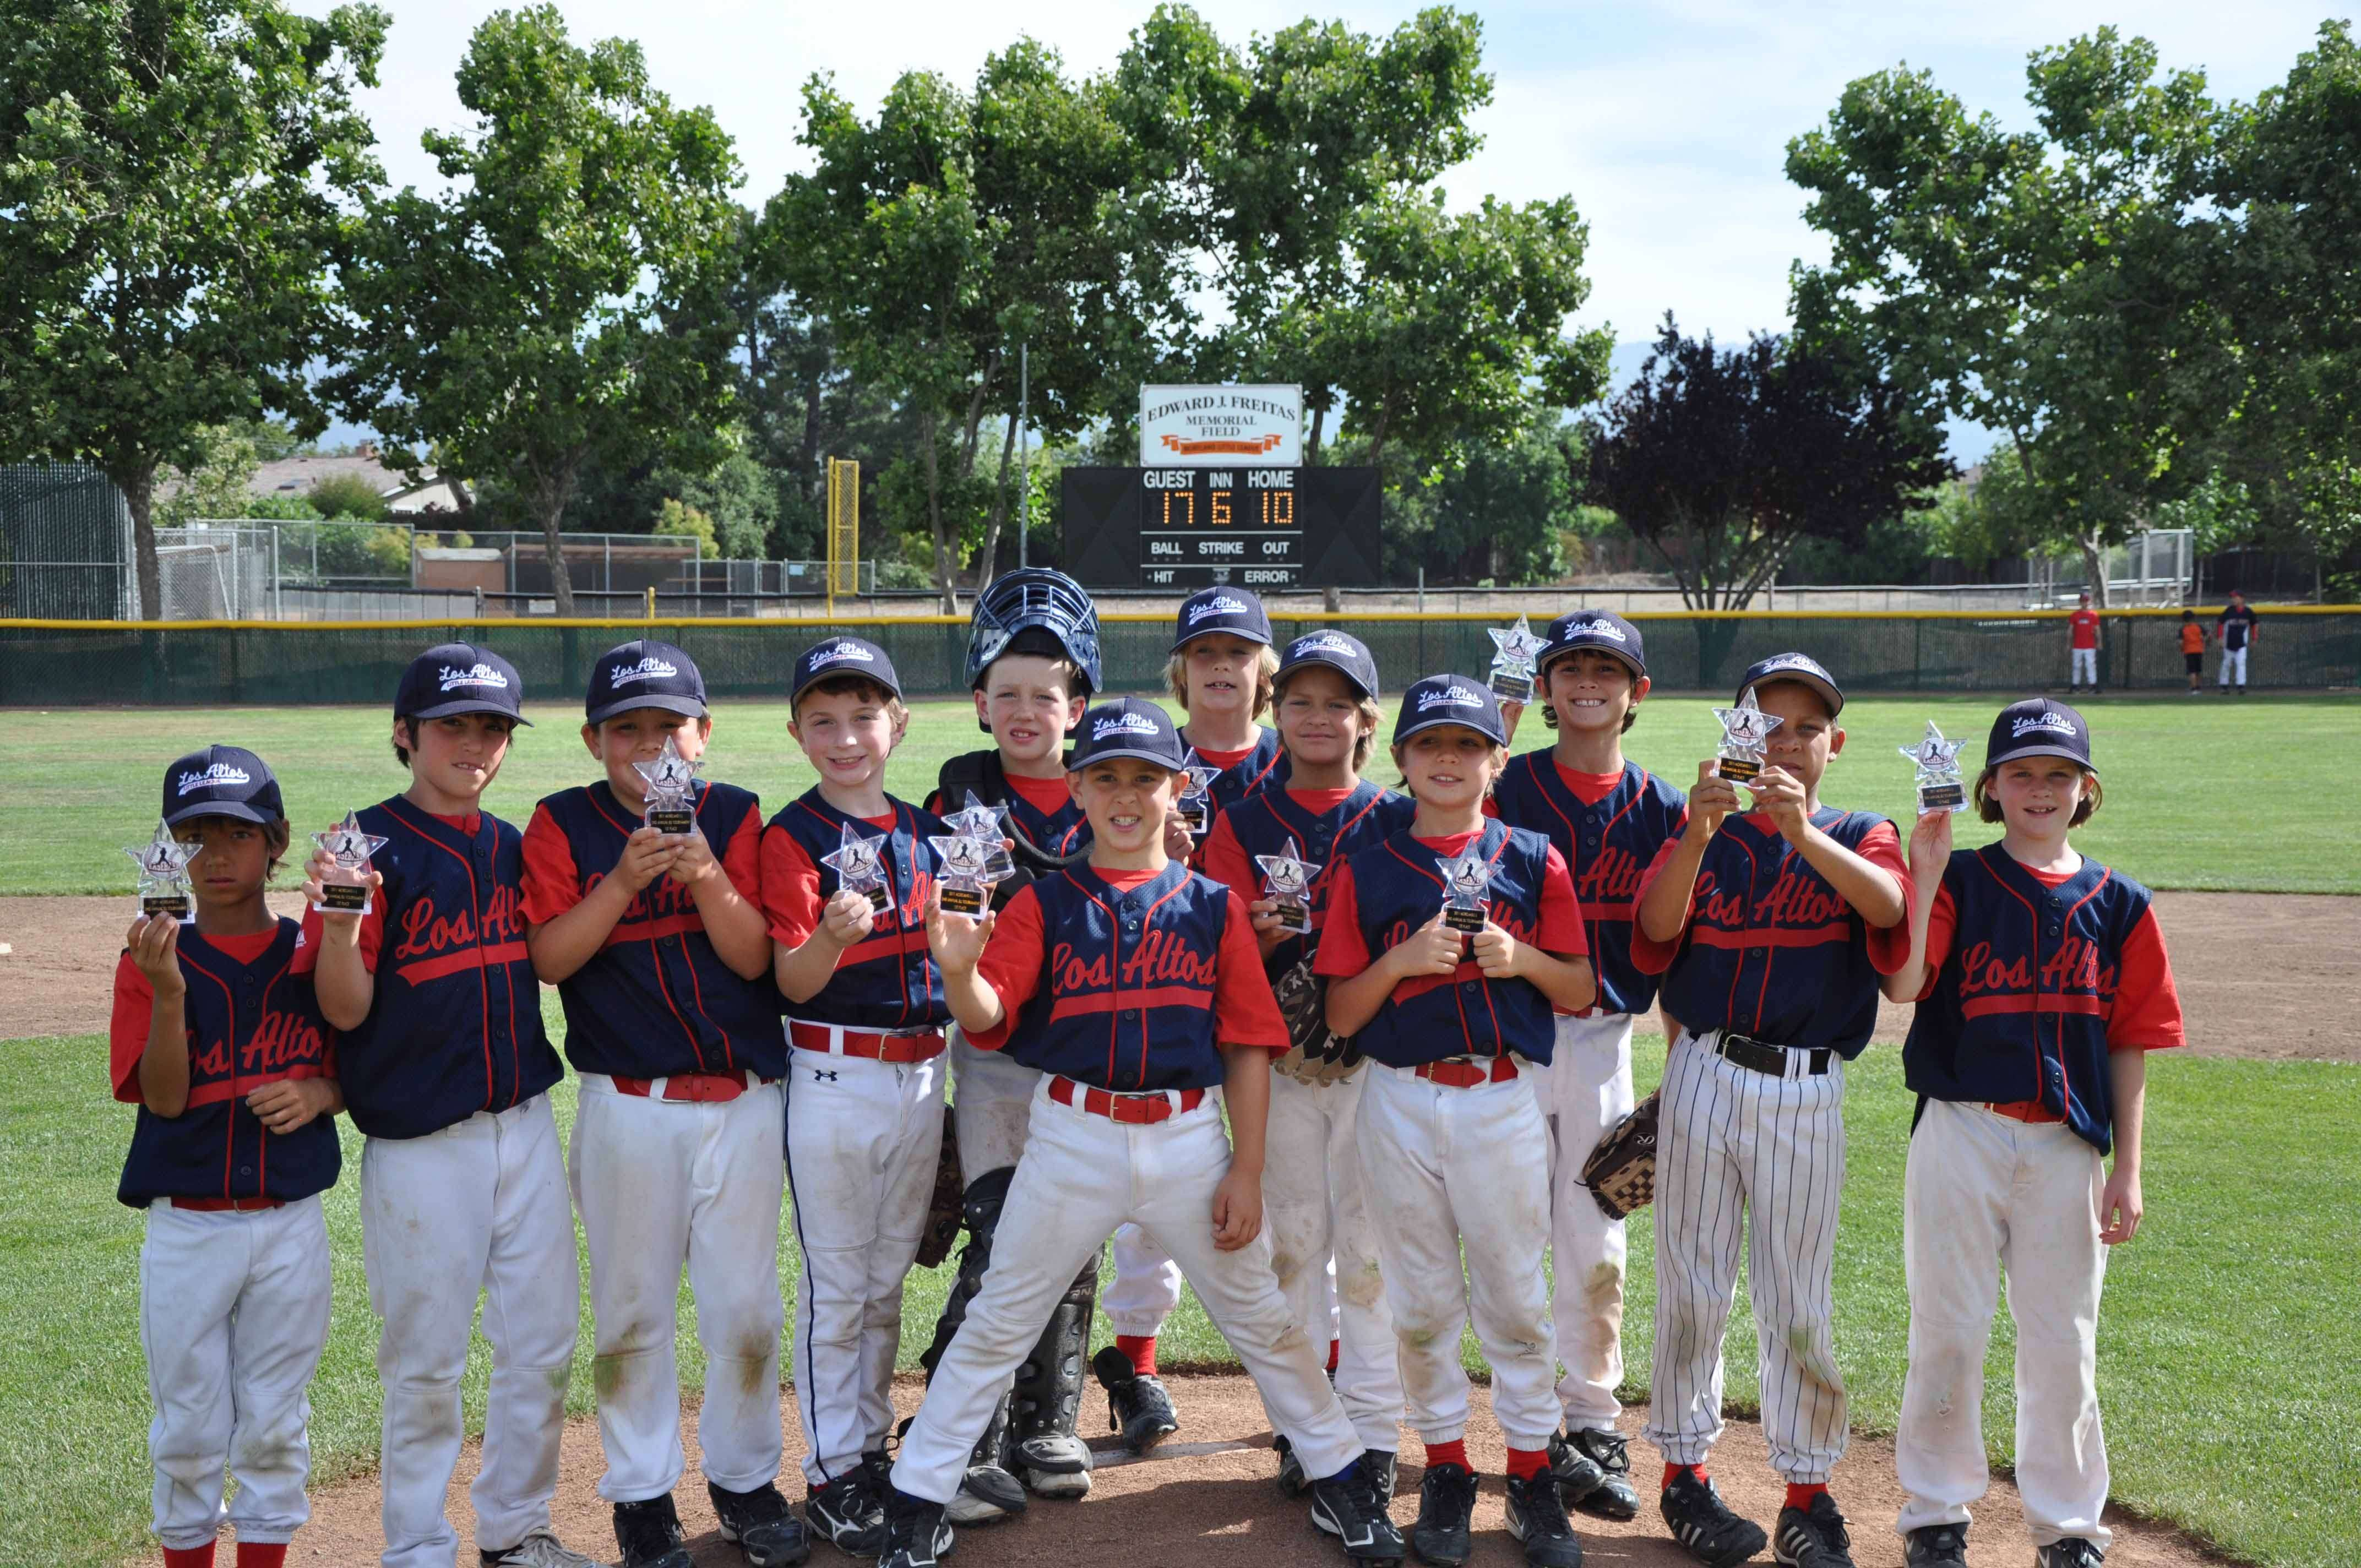 8U Blue, Moreland tournament